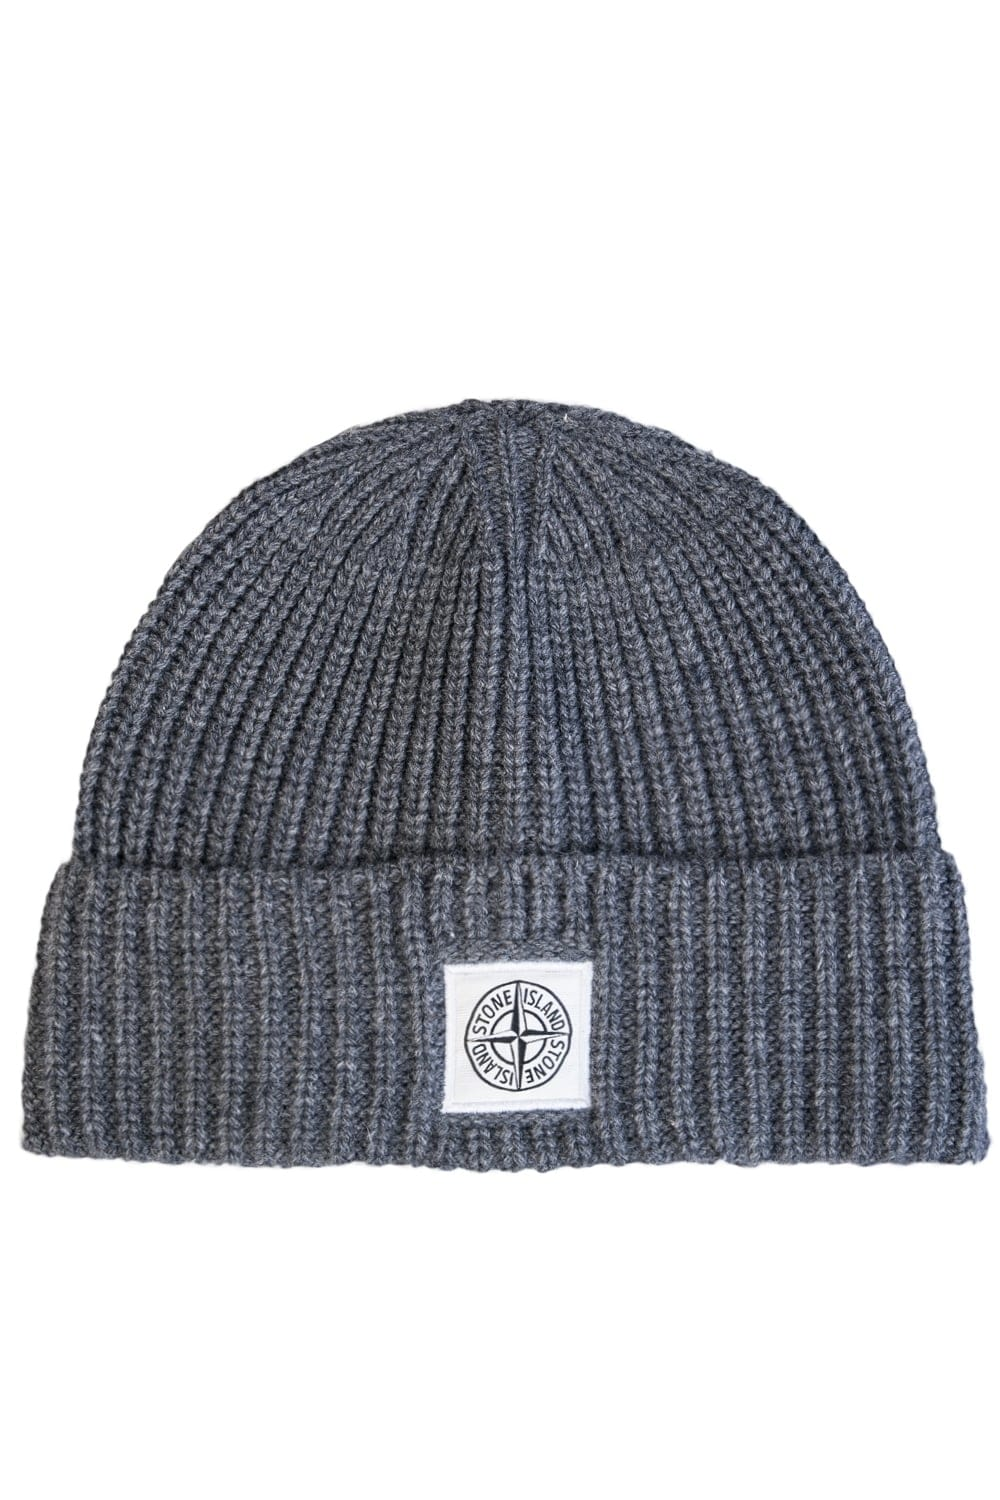 Stone Island Hat 6515N26A7 - Accessories from Sage Clothing UK 86449835f1c